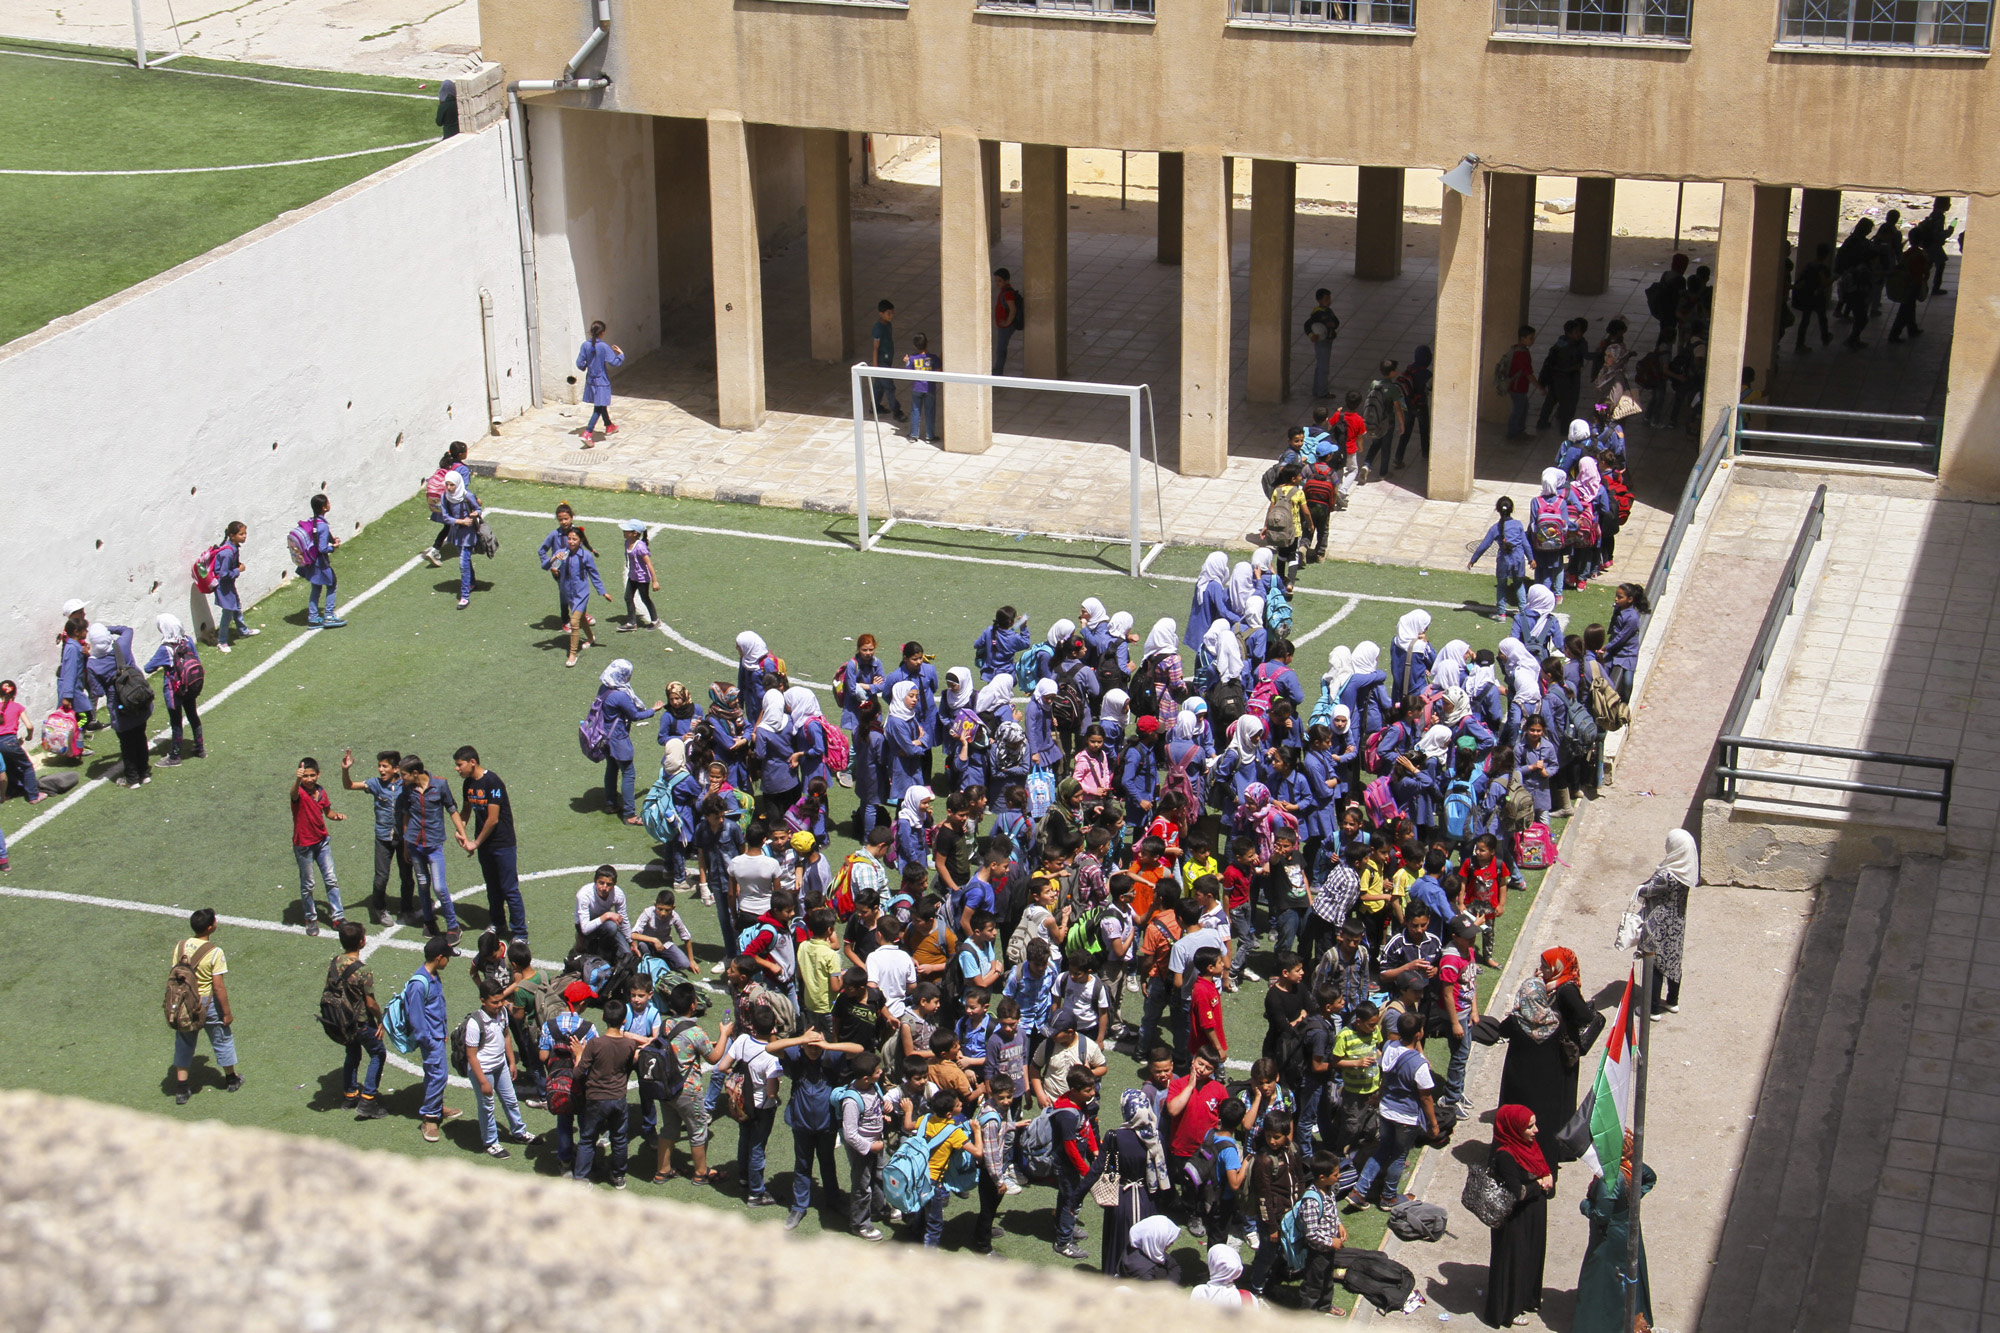 After the welcoming ritual, the students enter the school lined up by class, one after another in a disciplined manner.